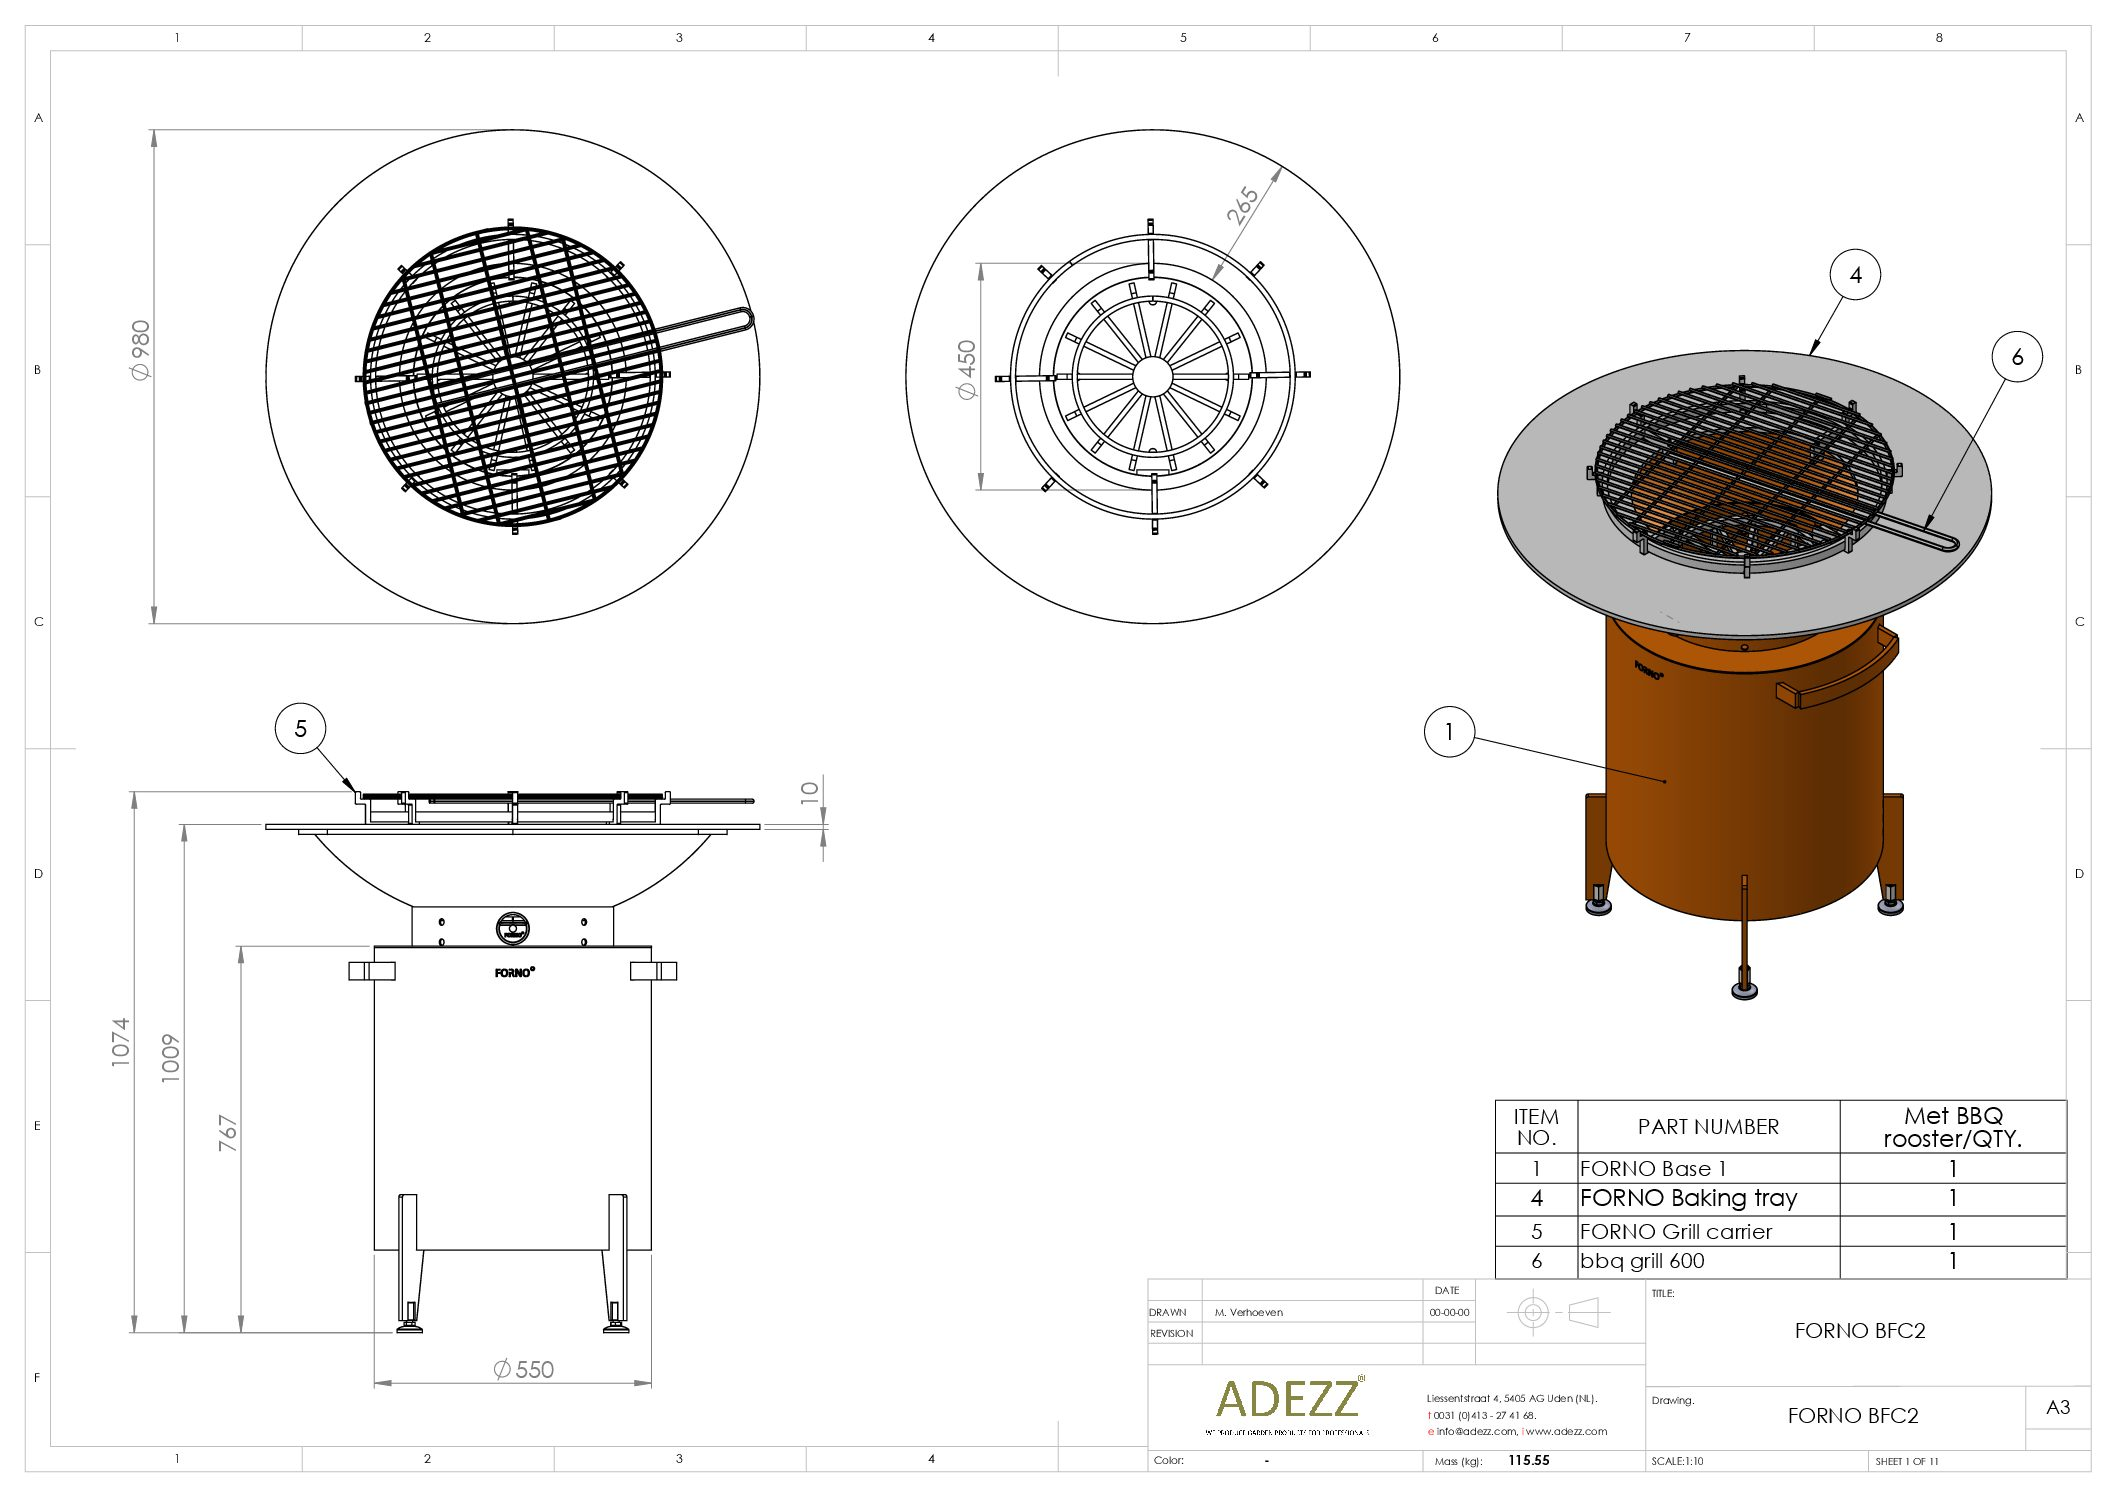 Forno Circular Grill with Feet by Adezz 100x100cm